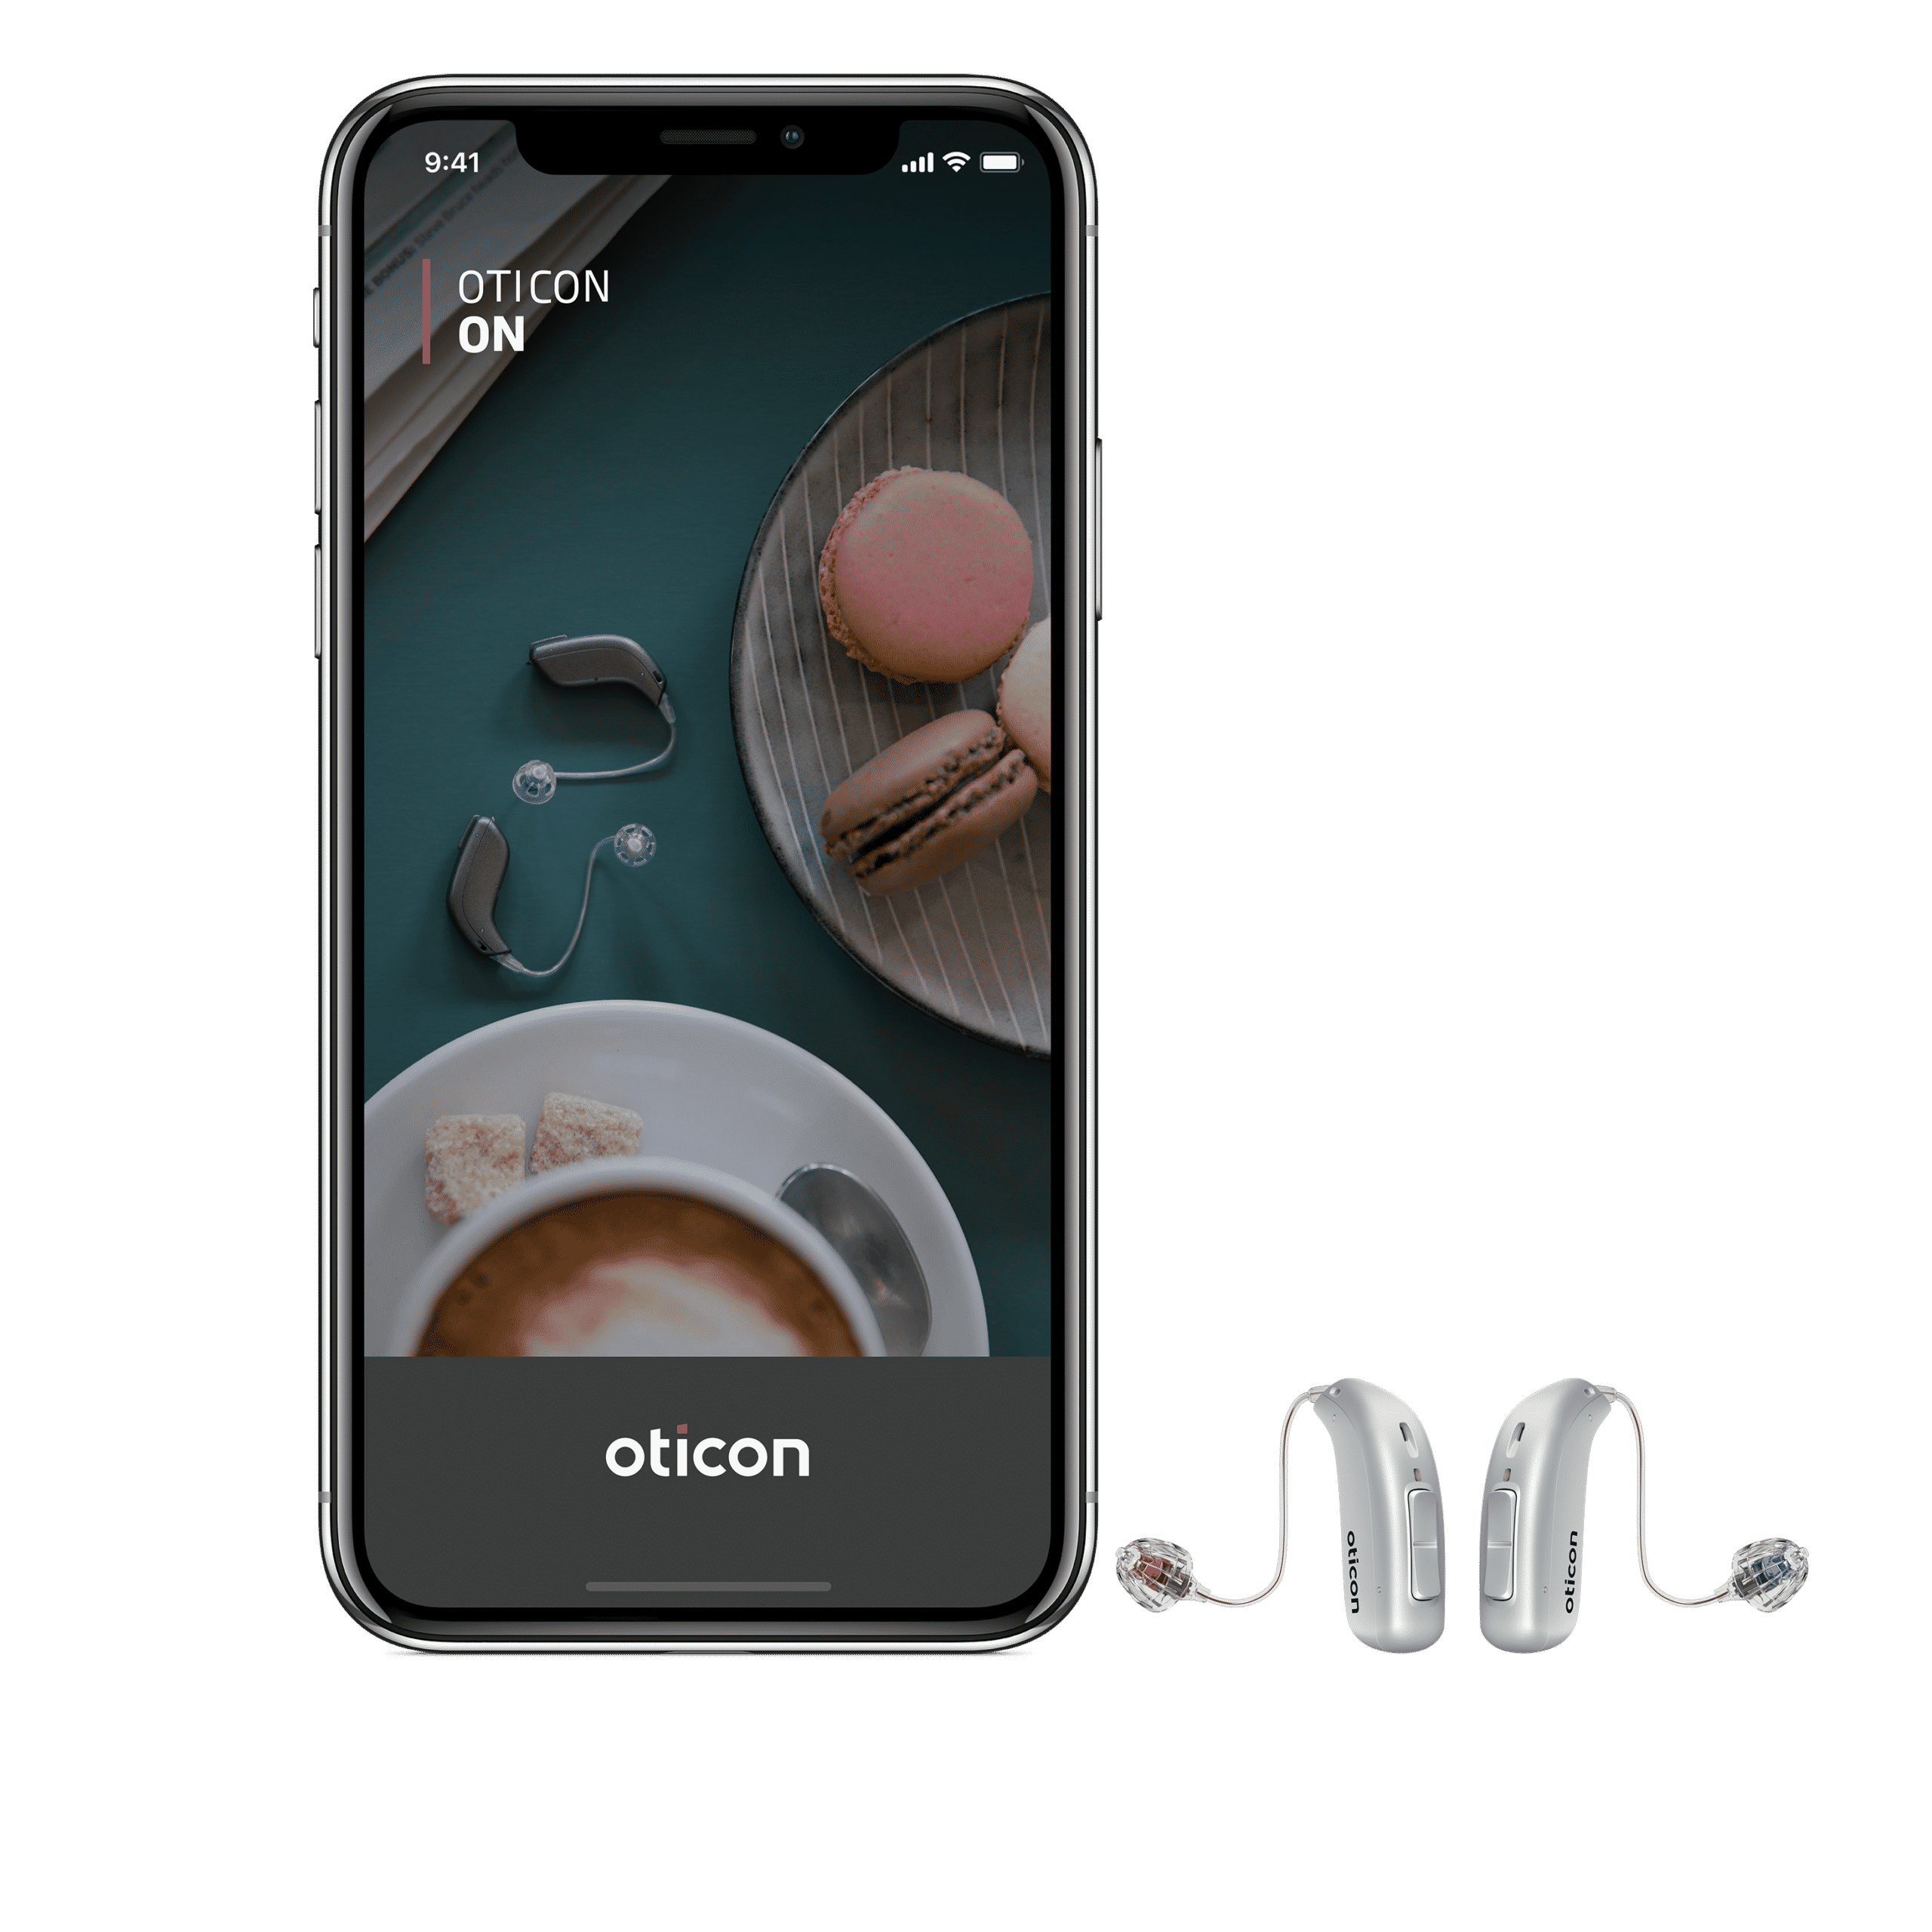 The Oticon More smart hearing aid next to a smart phone